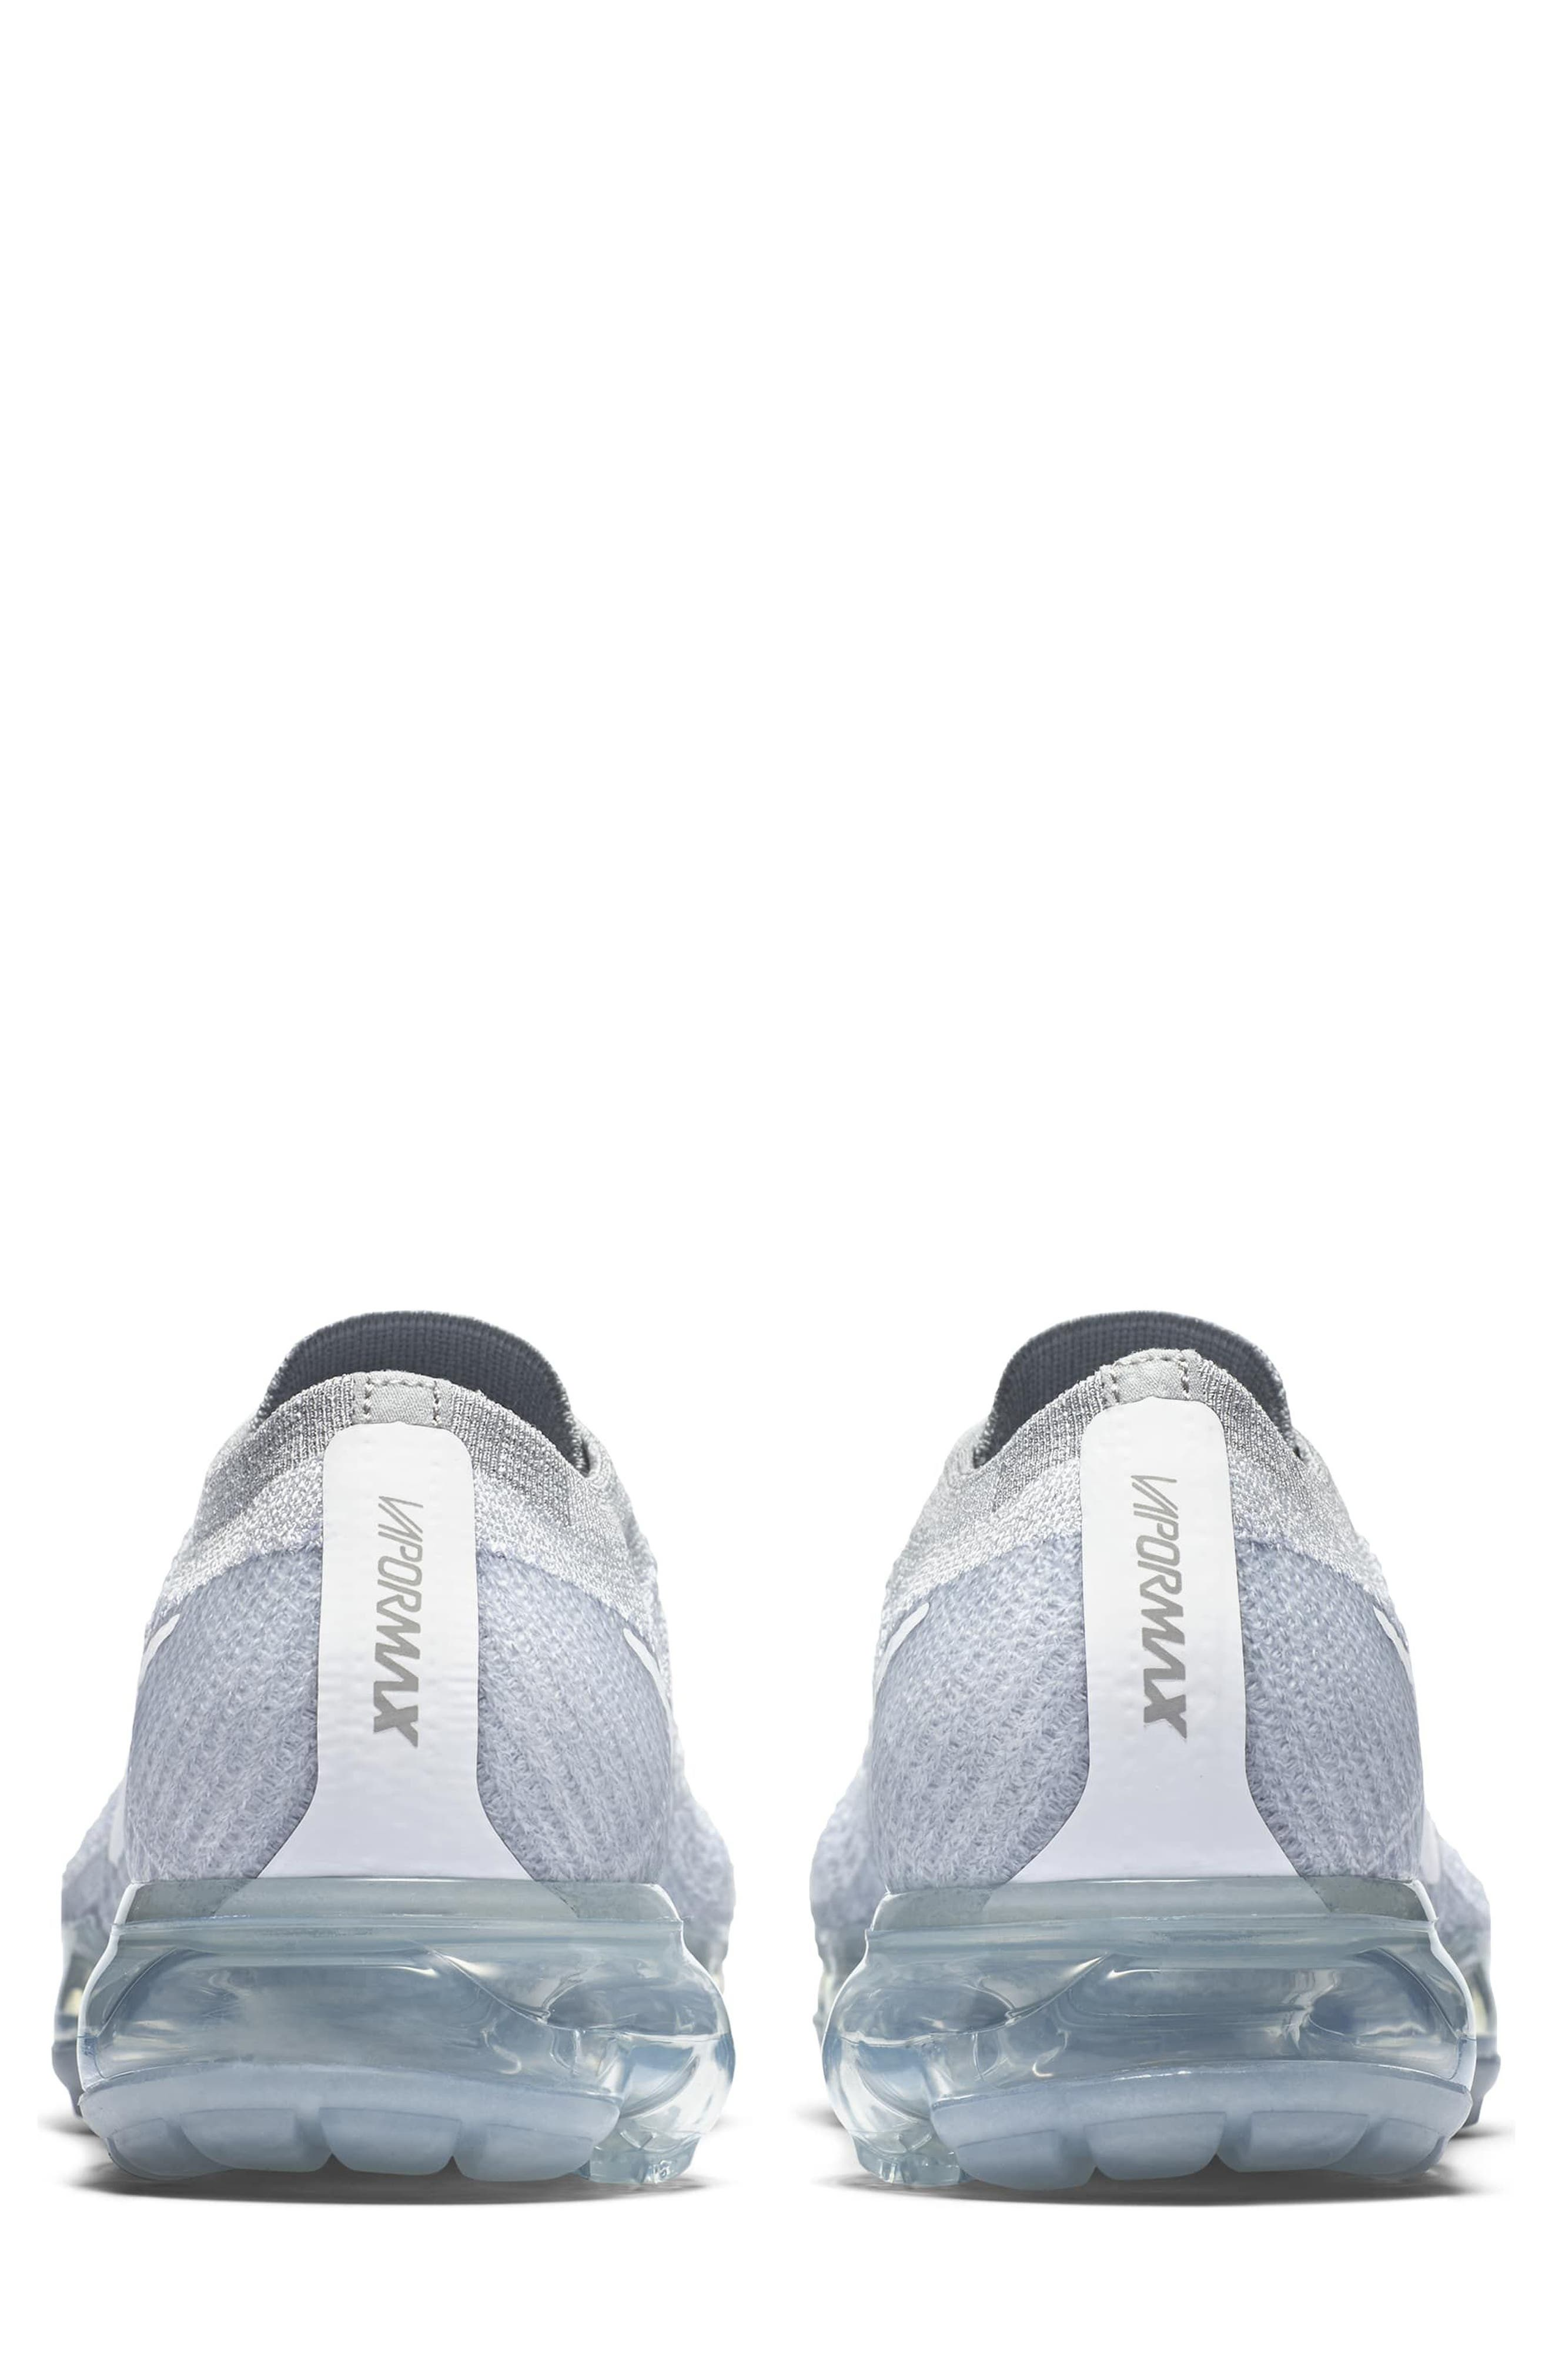 Air VaporMax Flyknit Running Shoe,                             Alternate thumbnail 2, color,                             020